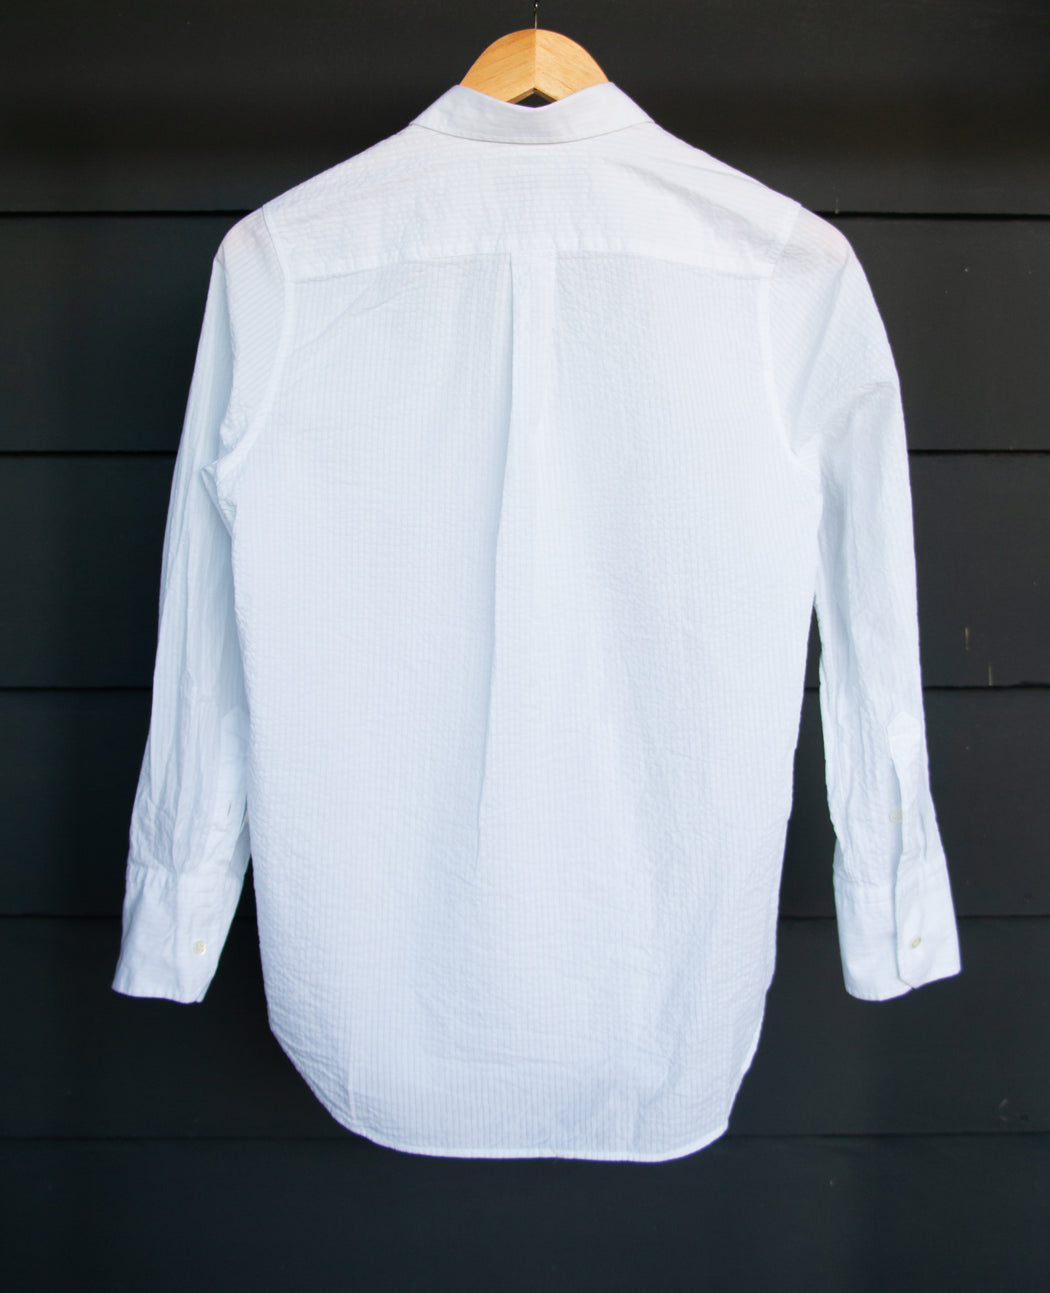 Stue White Crinkle Cotton Shirt